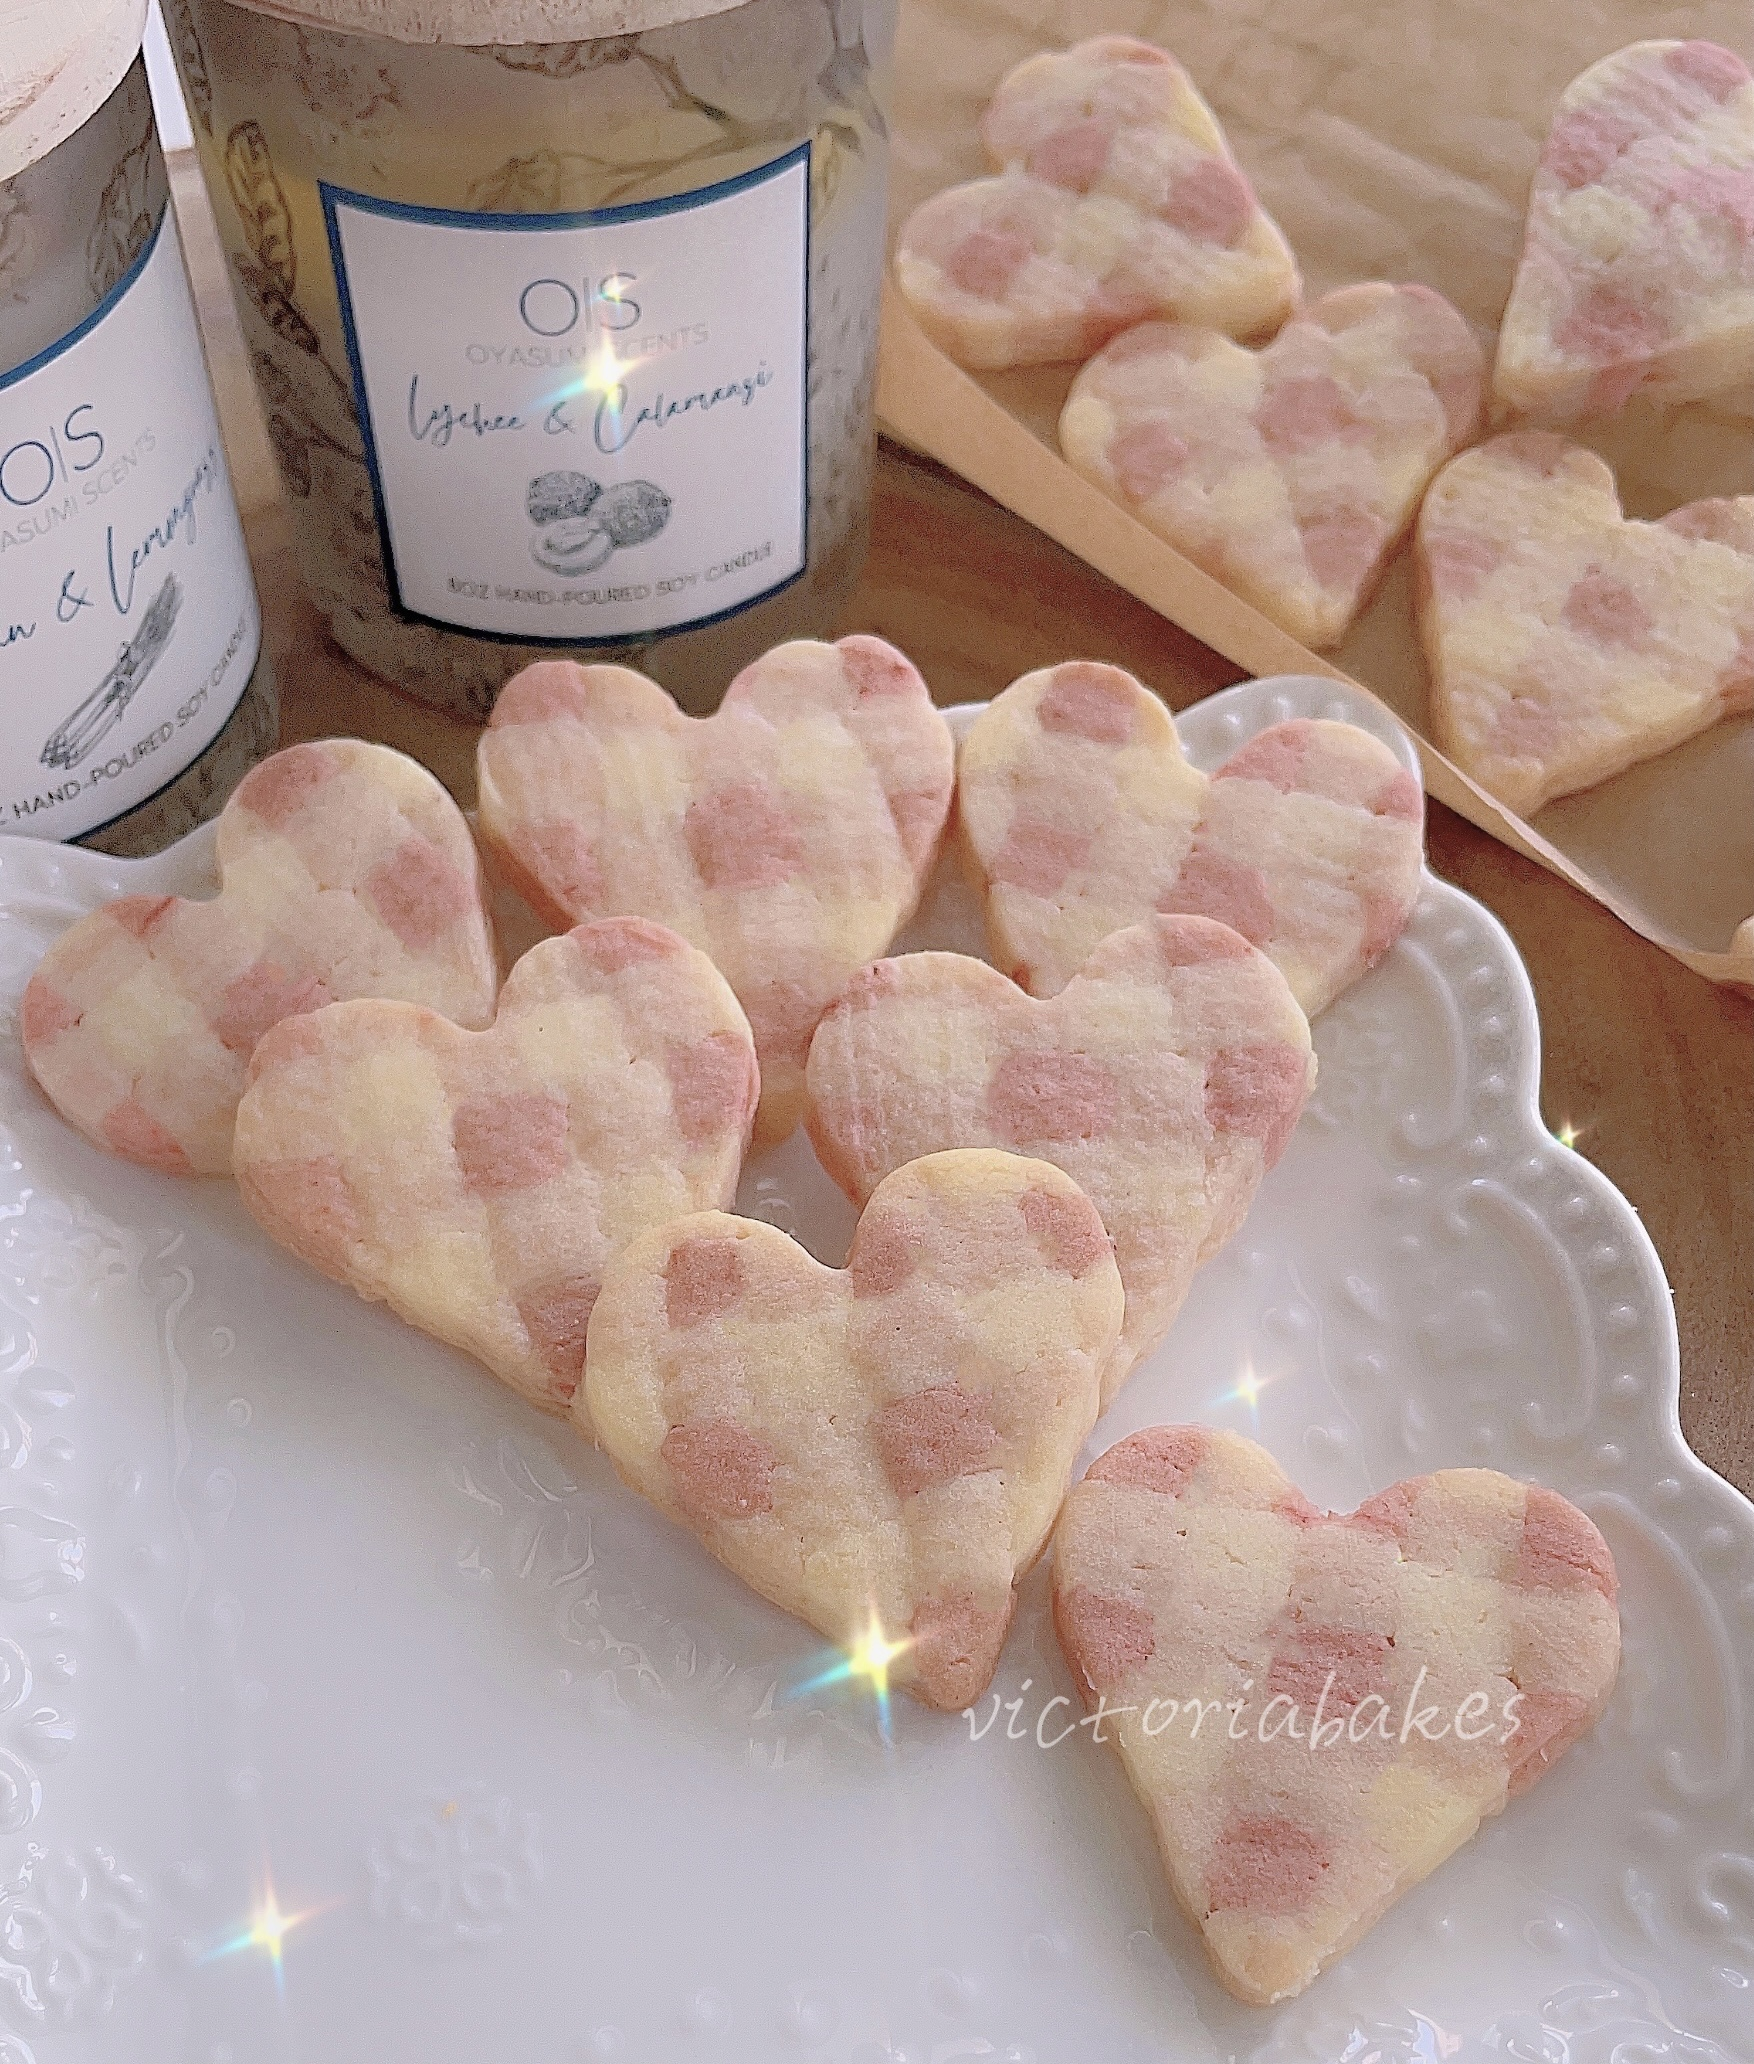 checkered heart shaped cookies